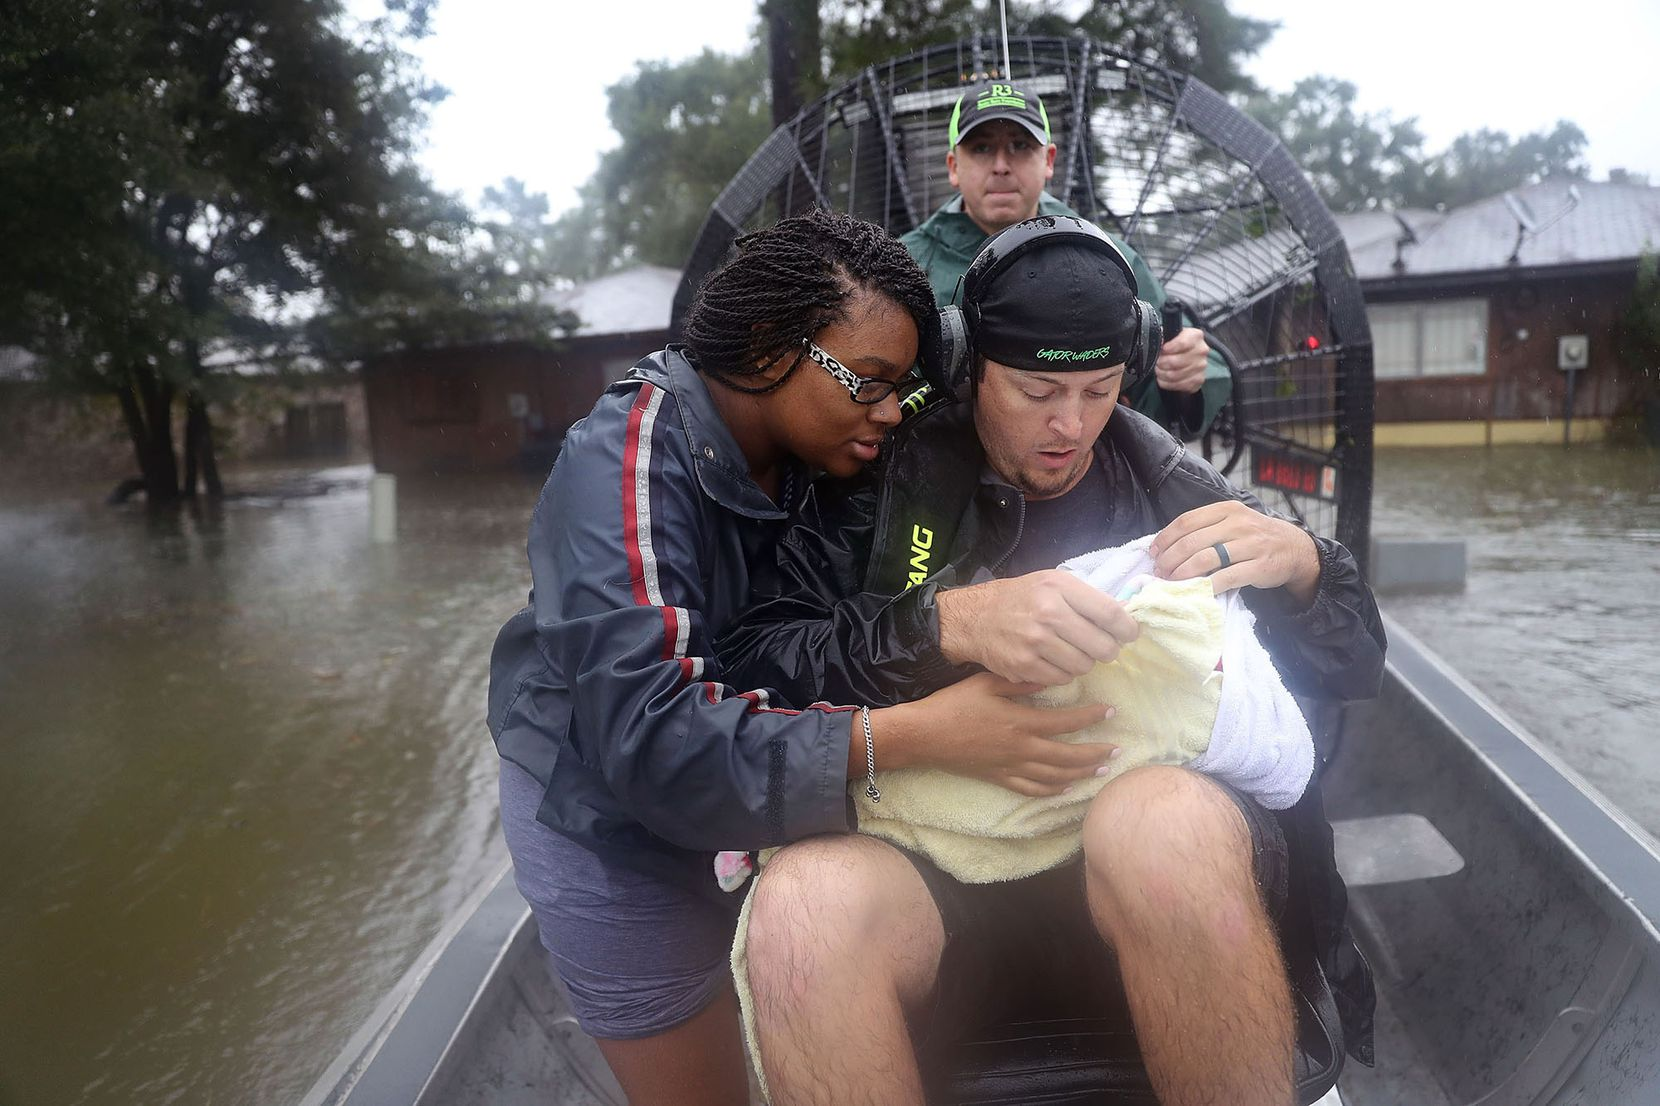 Shardea Harrison looks on at her 3 week old baby  Sarai Harrison being held by Dean Mize as he and Jason Legnon used his airboat to rescue them from their home after the area was inundated with flooding from Hurricane Harvey on August 28, 2017 in Houston, Texas.